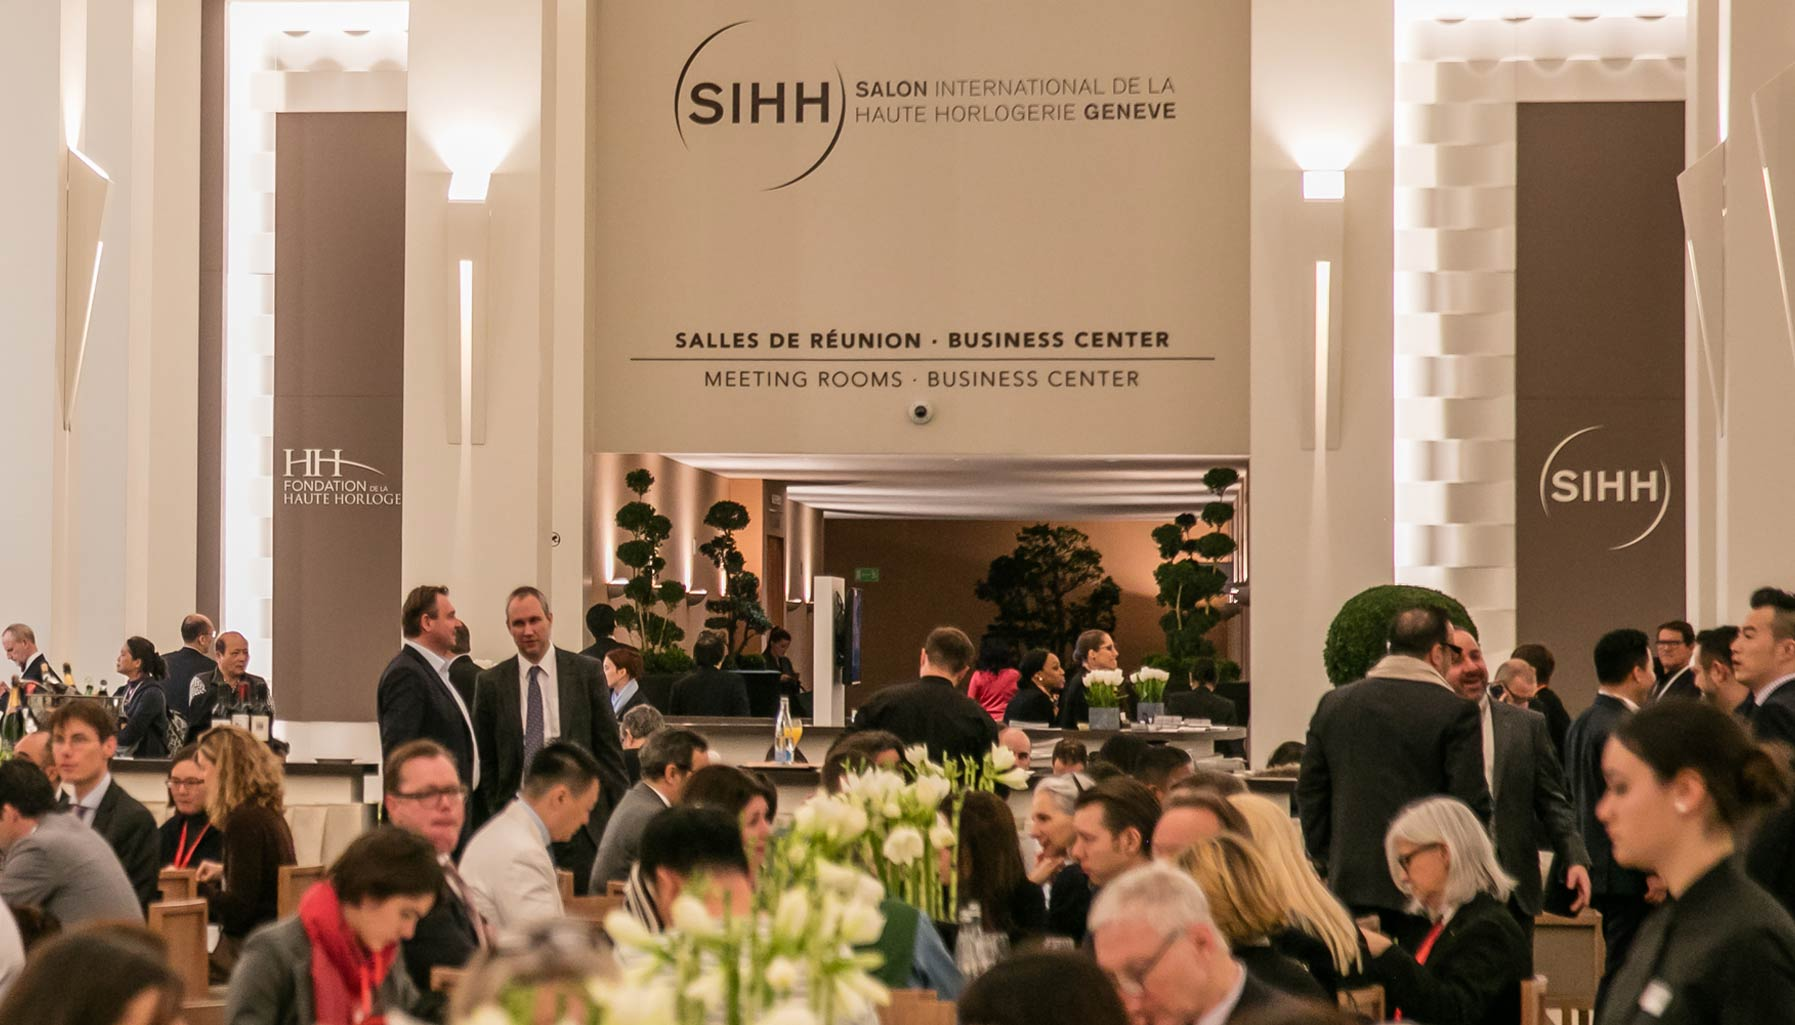 SIHH opens its doors to the public this year. Here's what to expect